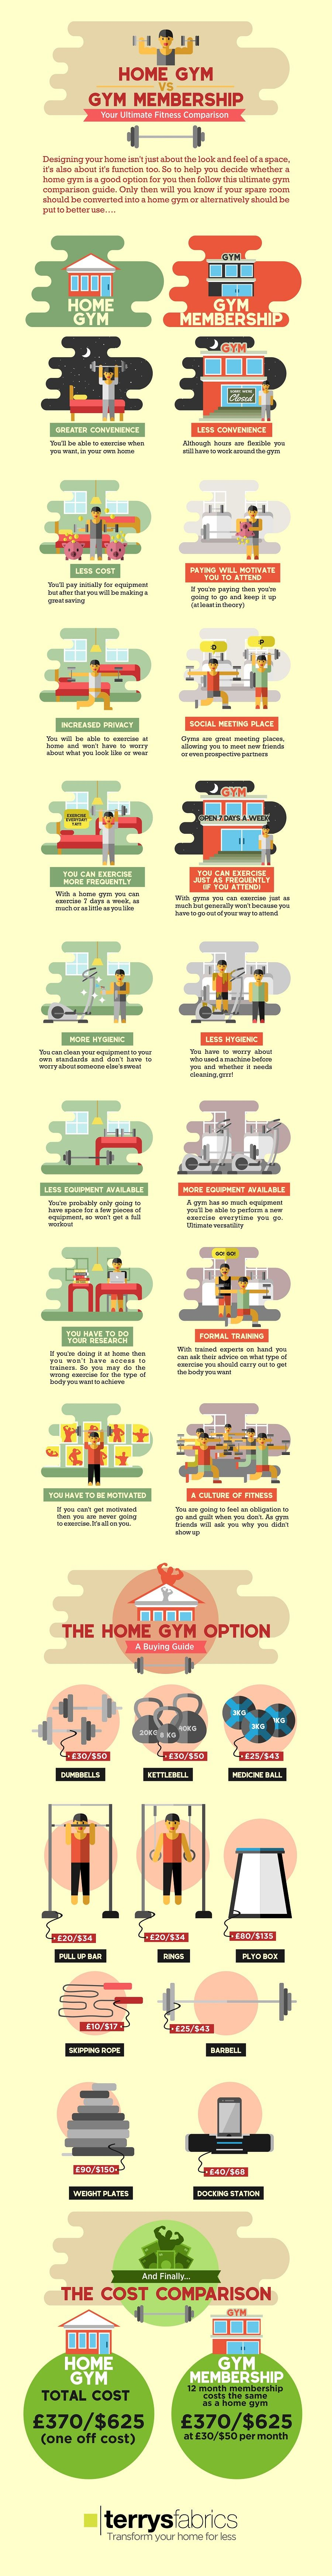 Home gym vs membership infographic visualistan